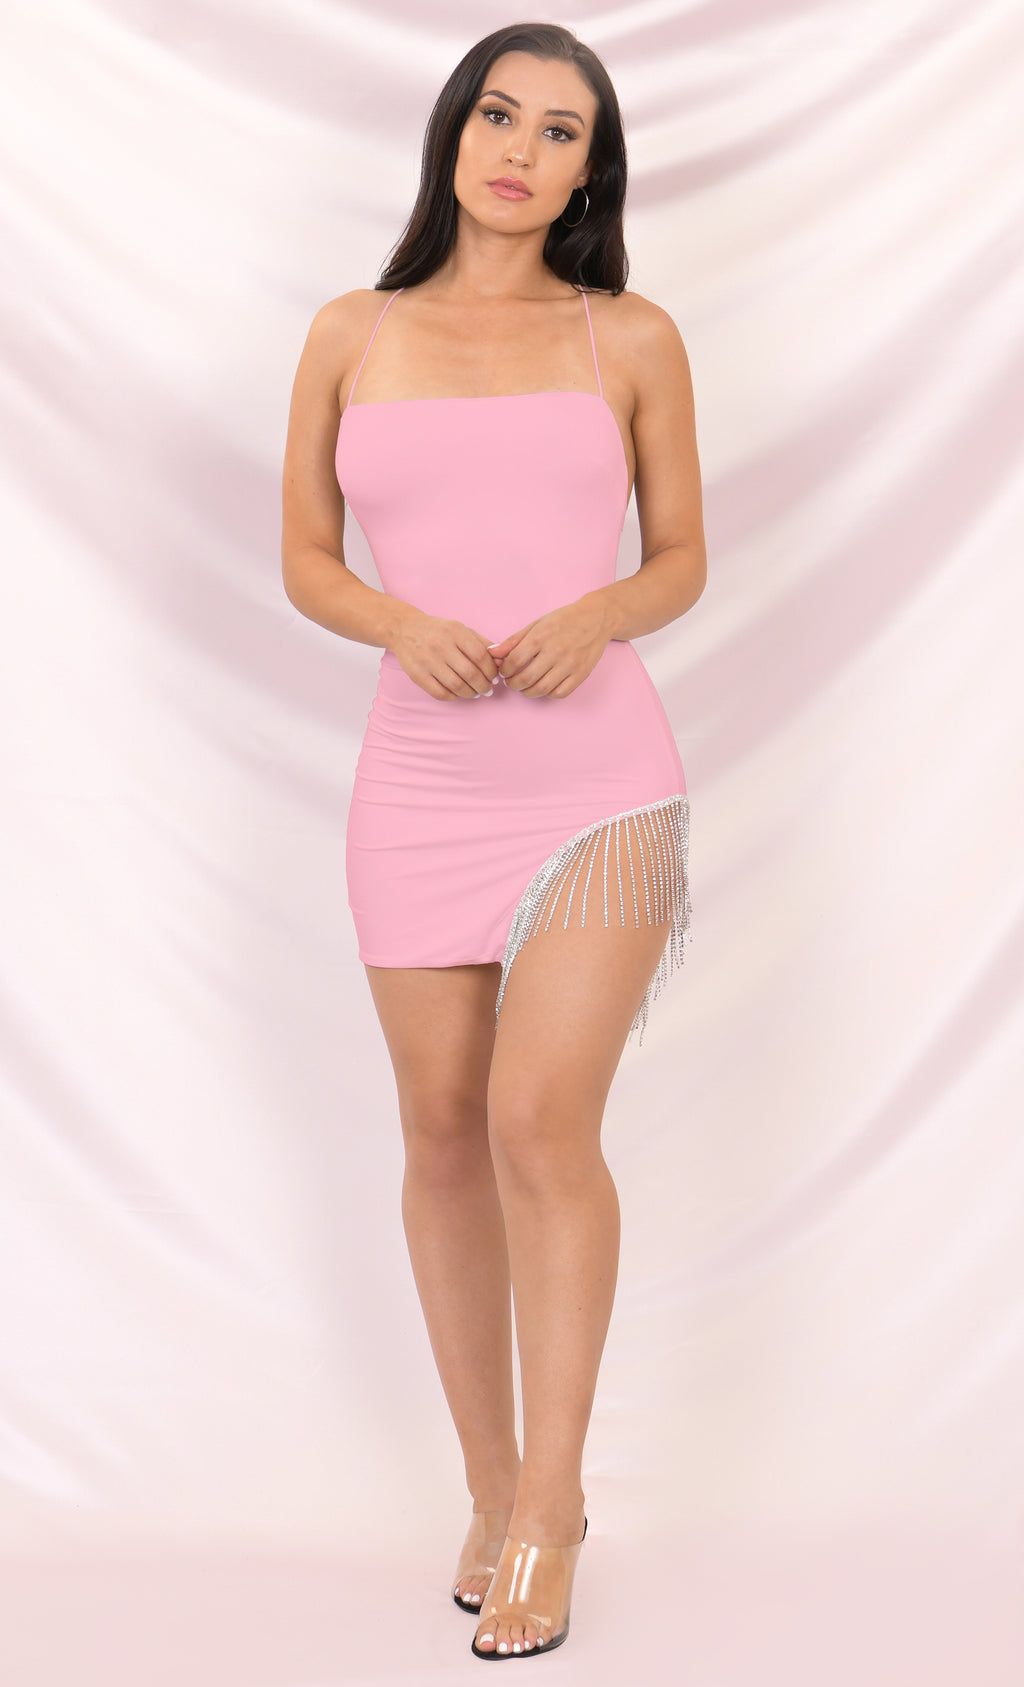 Born to Shine Pink Sleeveless Spaghetti Strap Cross Back Rhinestone Fringe Cut Out Bodycon Mini Dress - 3 Colors Available